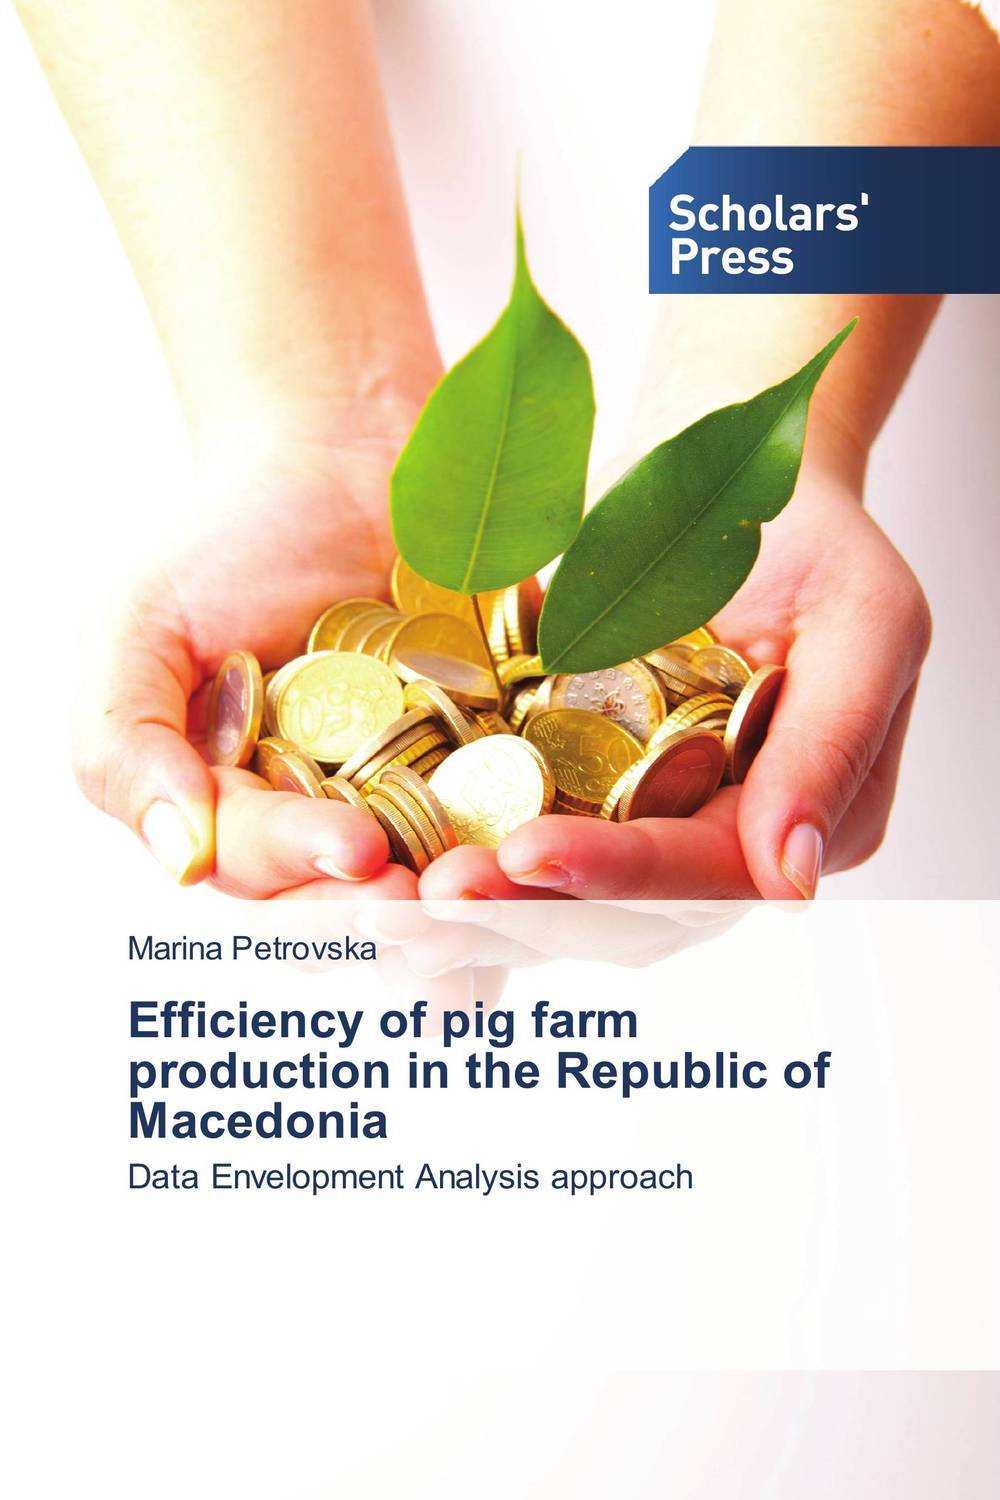 Efficiency of pig farm production in the Republic of Macedonia rechargeable l2 led flashlight zoomable cree xml torch portable 5 mode lamp waterproof lanterna 18650 battery and charger